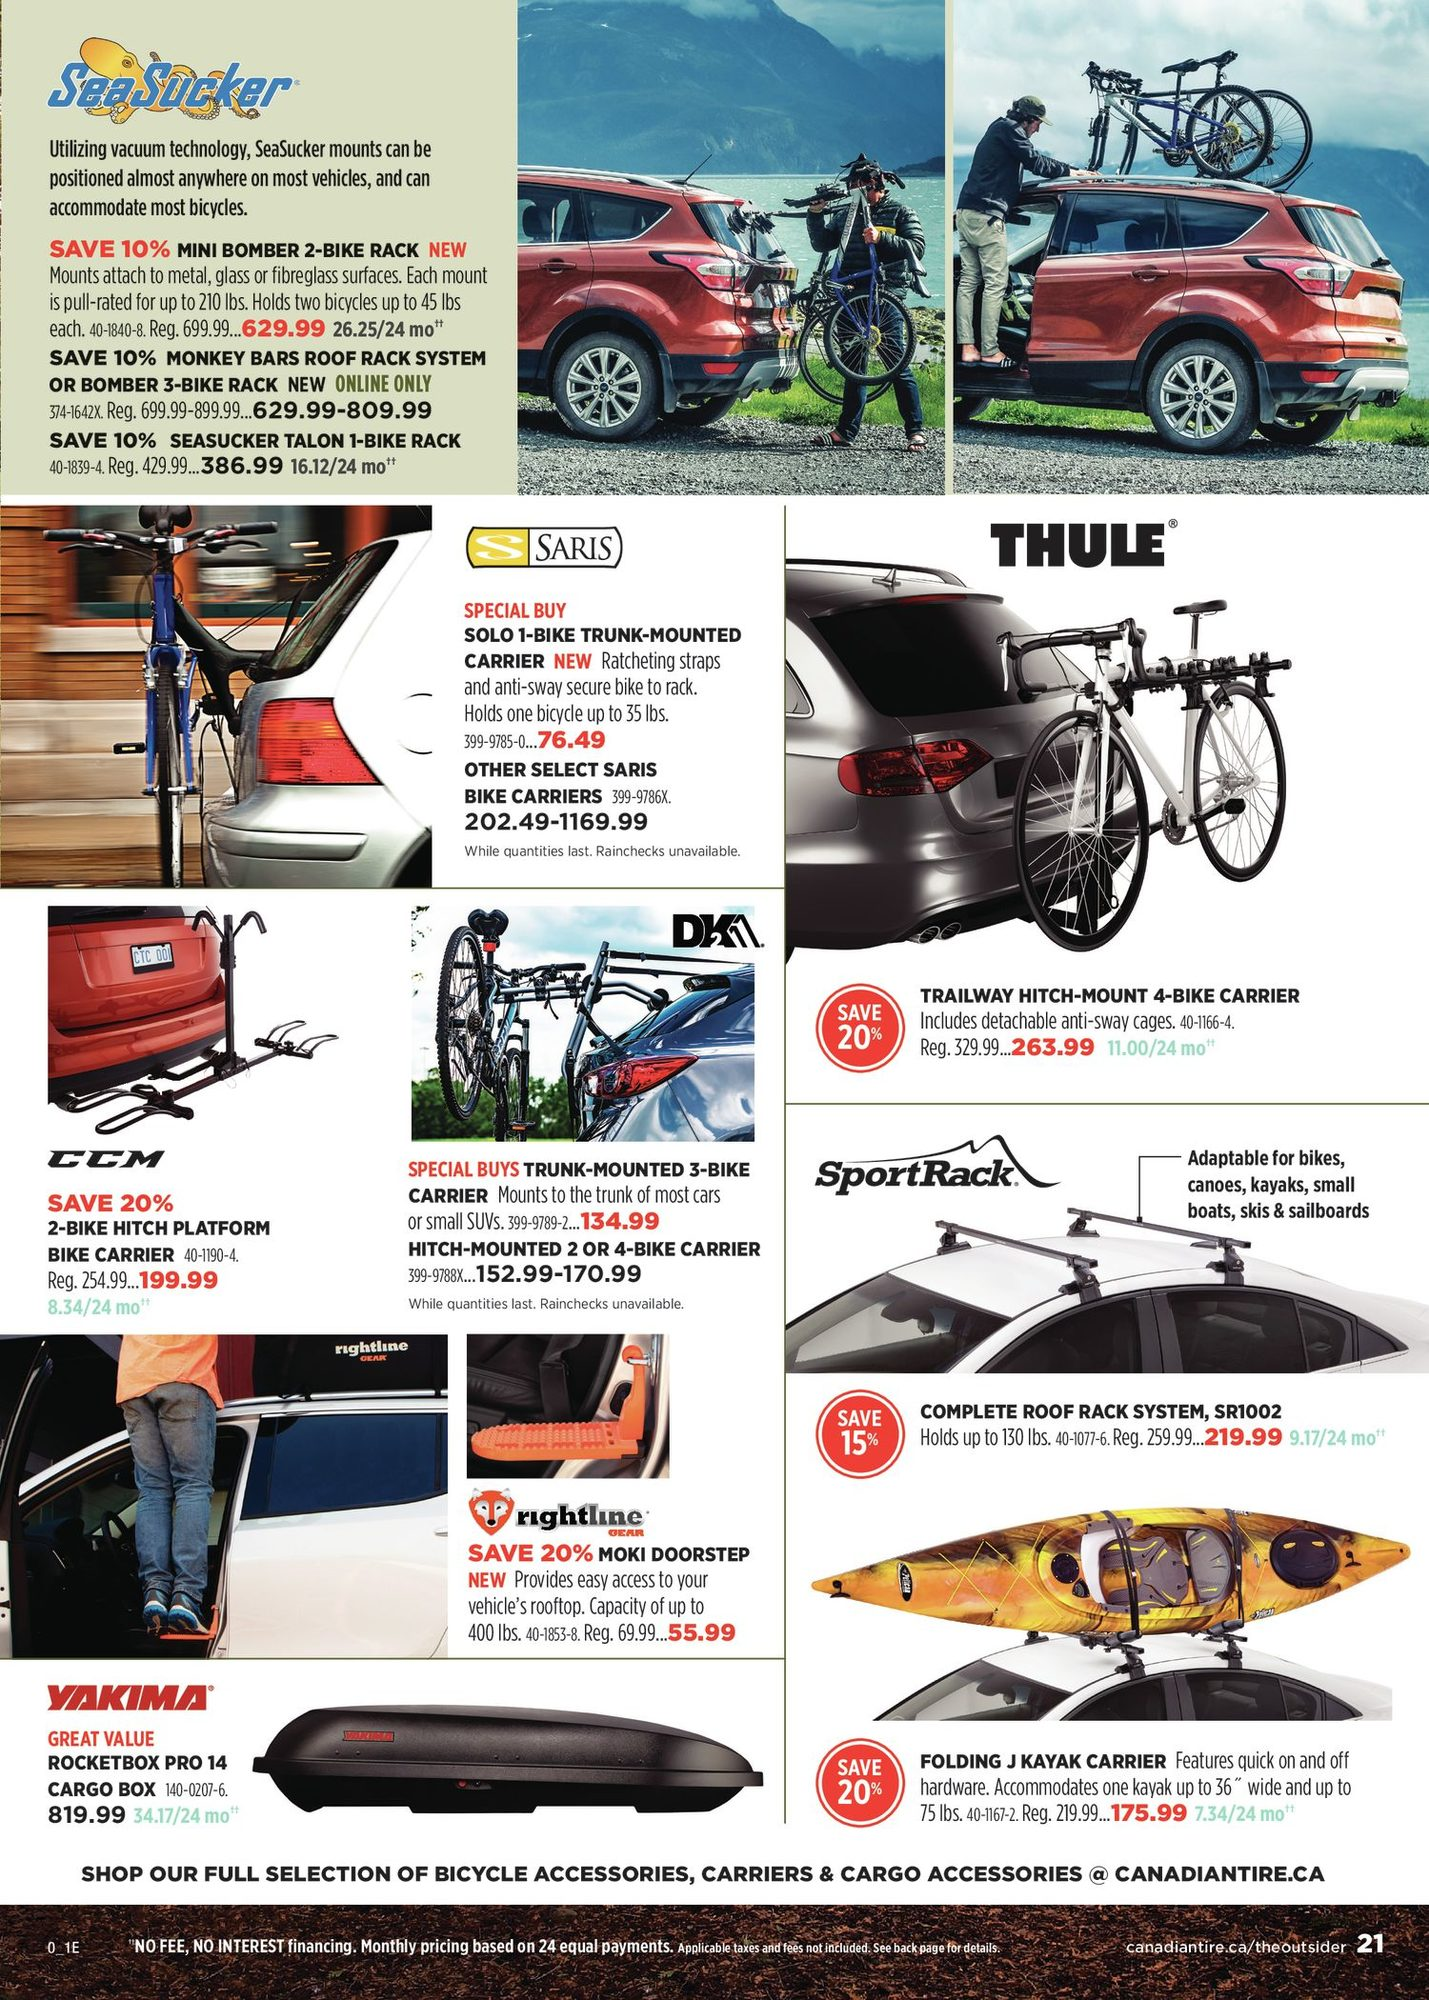 Canadian Tire - The Outsider - Spring/Summer 2021 - Page 21